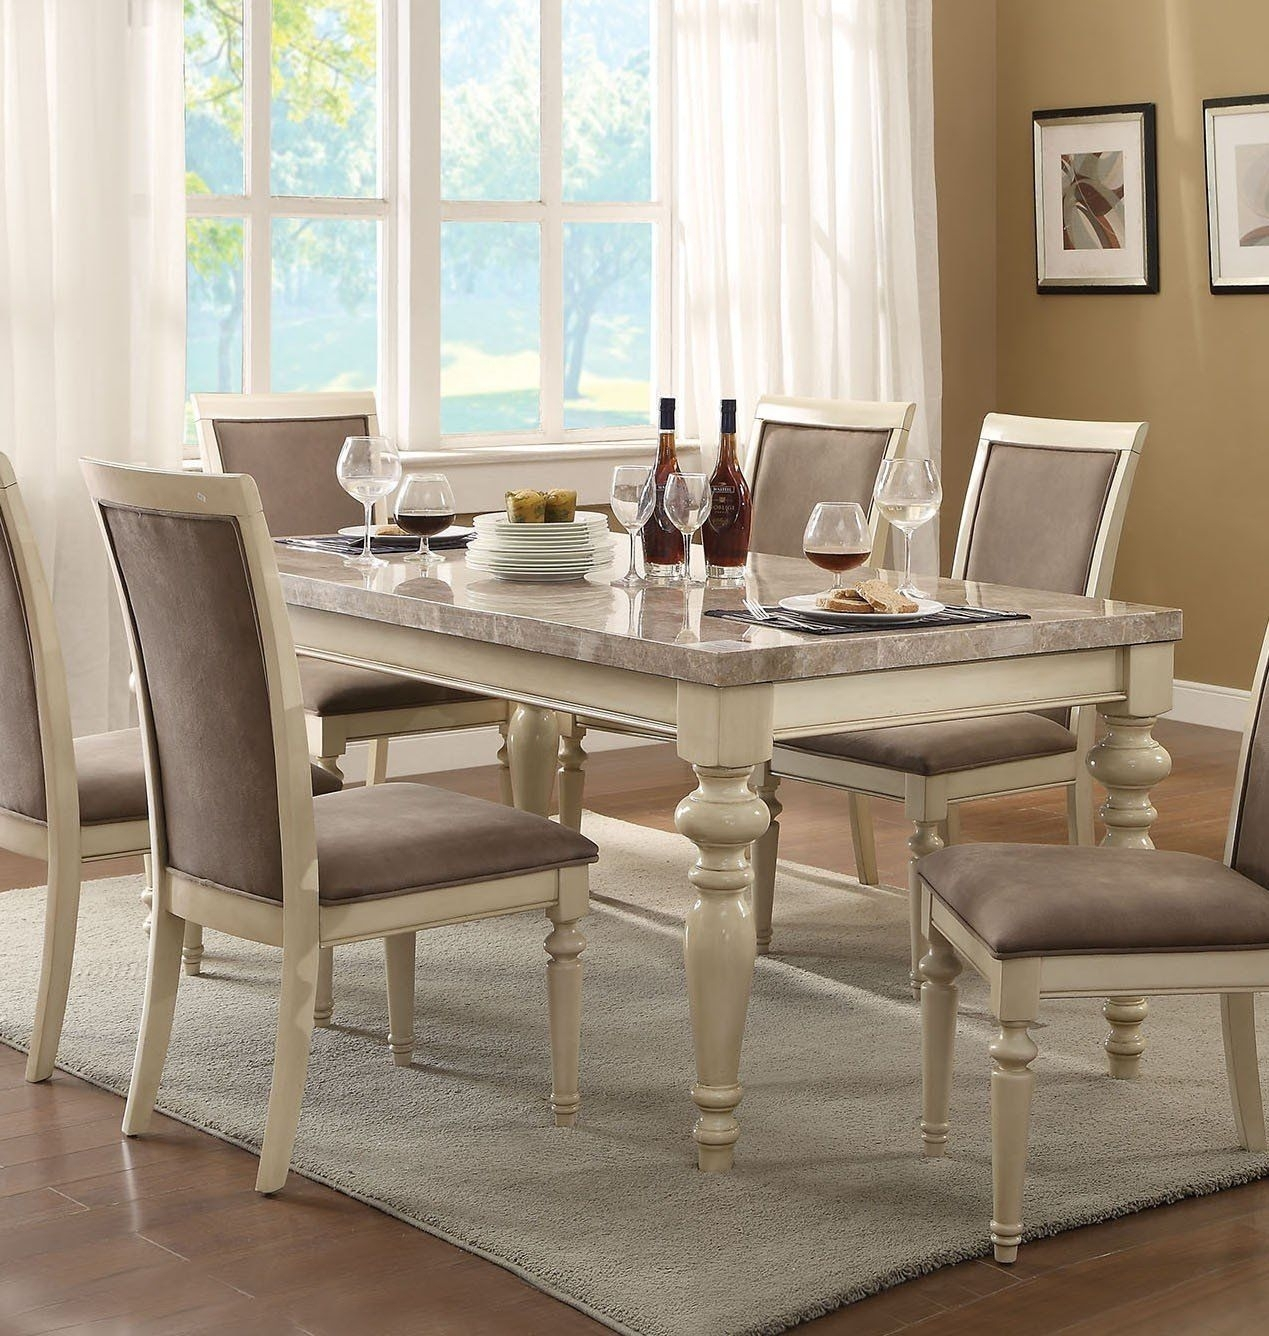 Acme 71705 Ryder Antique White Marble Top Dining Table | Home Pertaining To Most Recently Released Caira 7 Piece Rectangular Dining Sets With Diamond Back Side Chairs (Image 2 of 20)